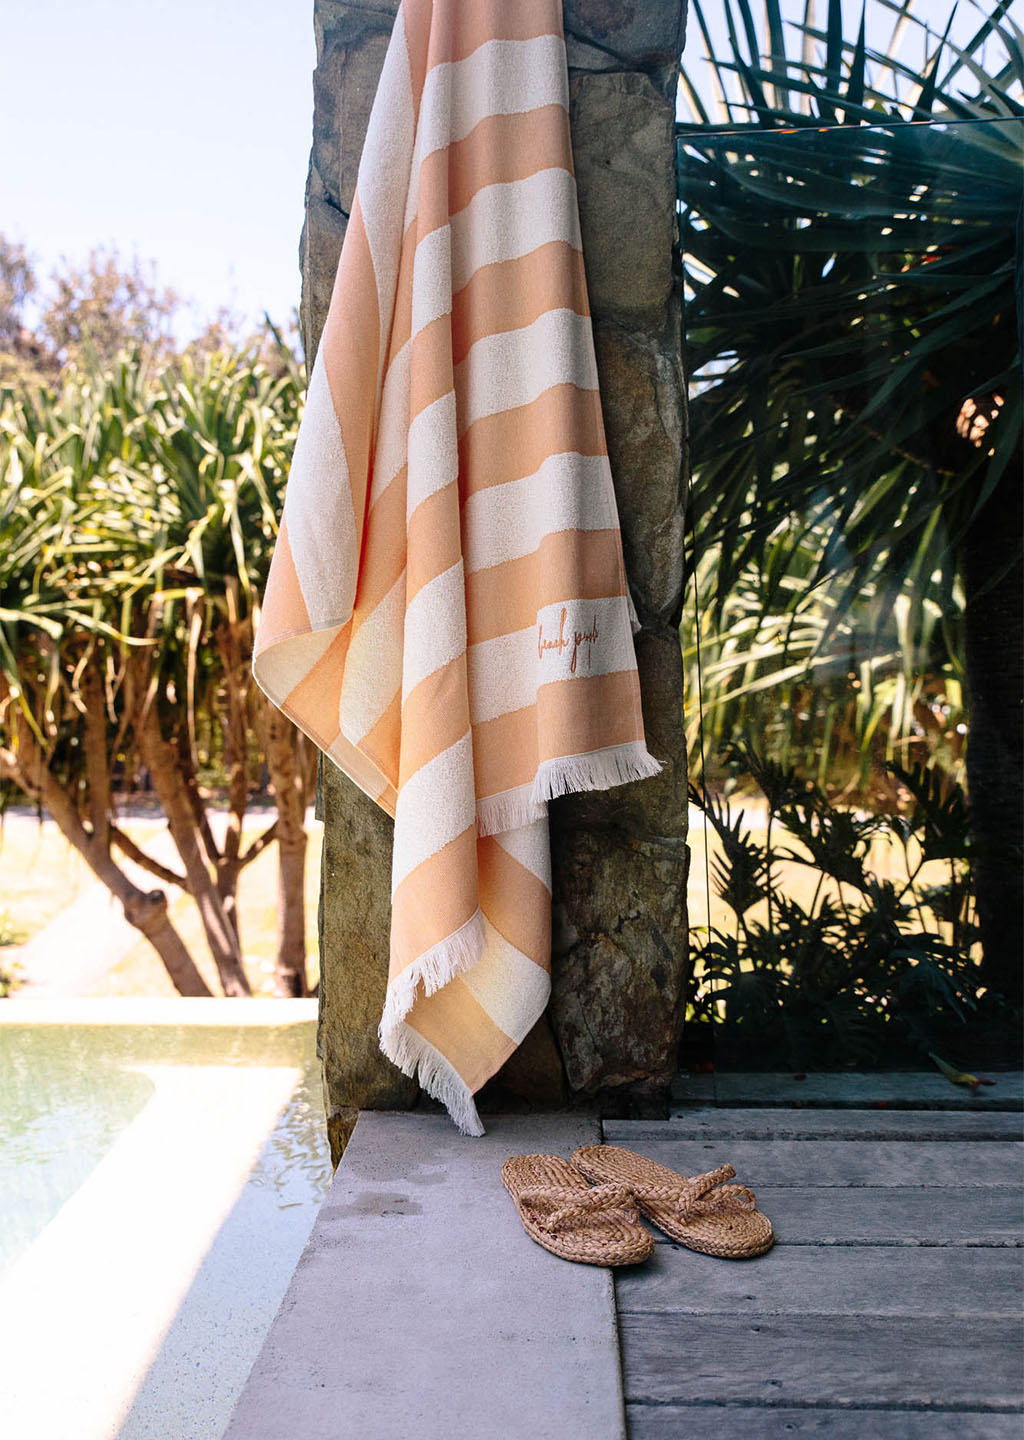 The Beach People Pool Towel hanging near the pool Summer Accessories